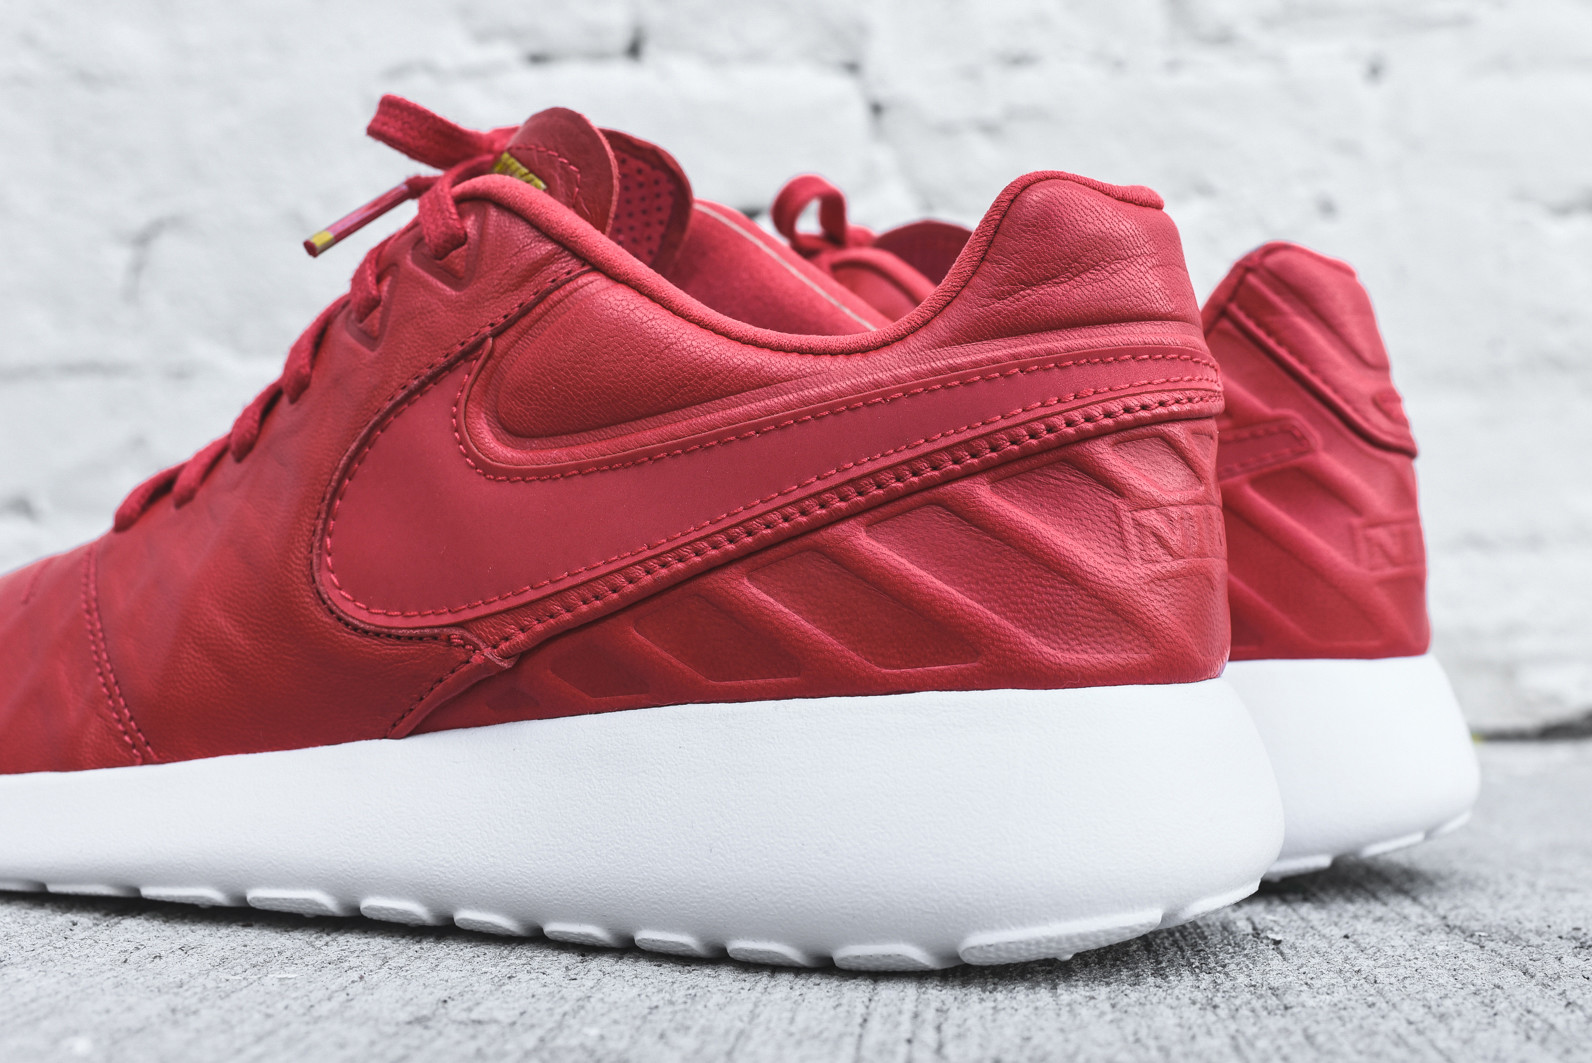 brand new 0490b d6bf4 The Nike Roshe Tiempo VI University Red Is Now Up For Grabs